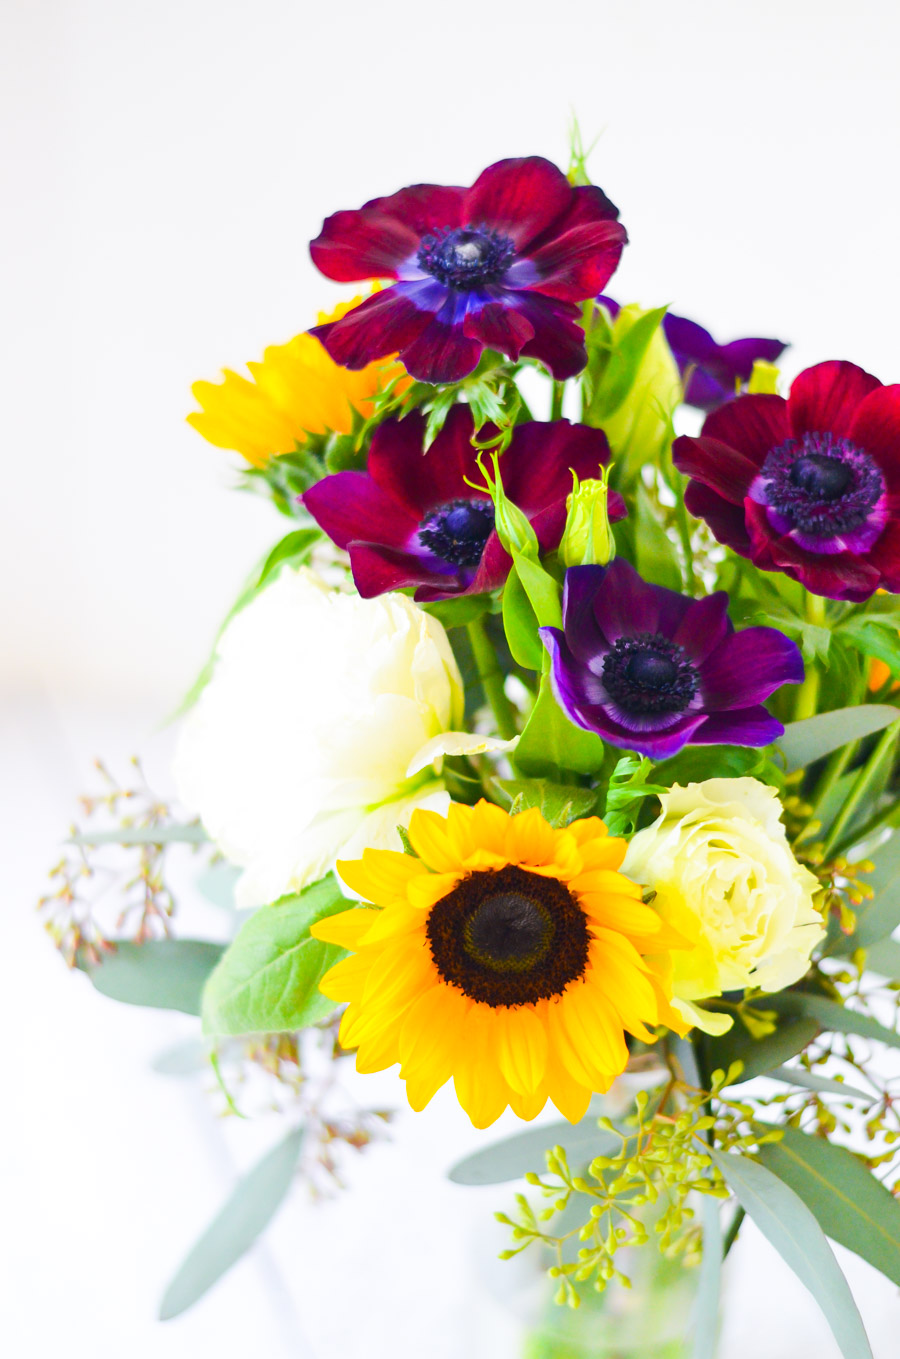 Tips for Arranging Flowers for a Beginner. DIY Yellow + Purple Flower Ideas w. Sunflowers - Original LA Flower Market